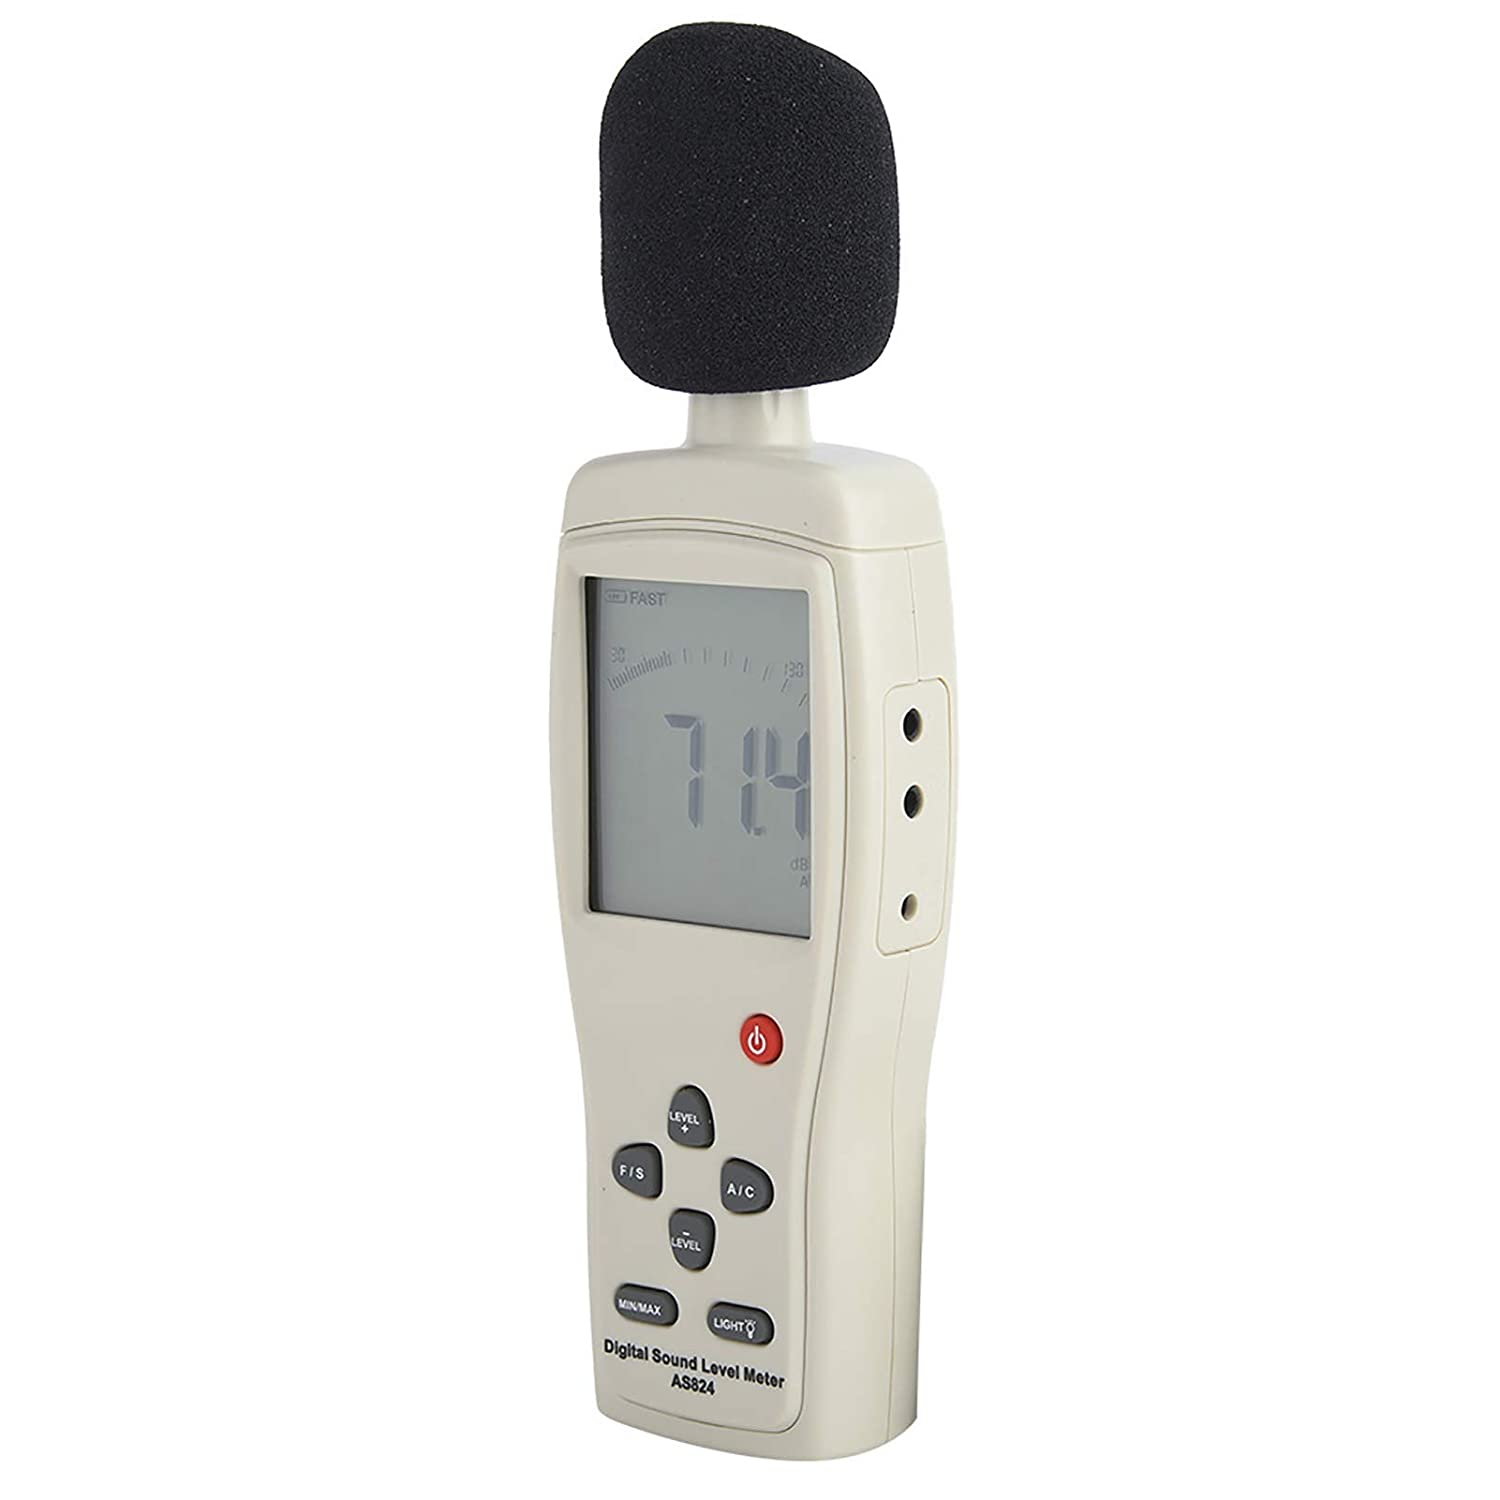 Measurement Portable Digital Tester Sound Level Meter Data Hold Function LCD Screen Detector for Industry and Daily Life with Range 30 to 130dBA 35 to 130dBC